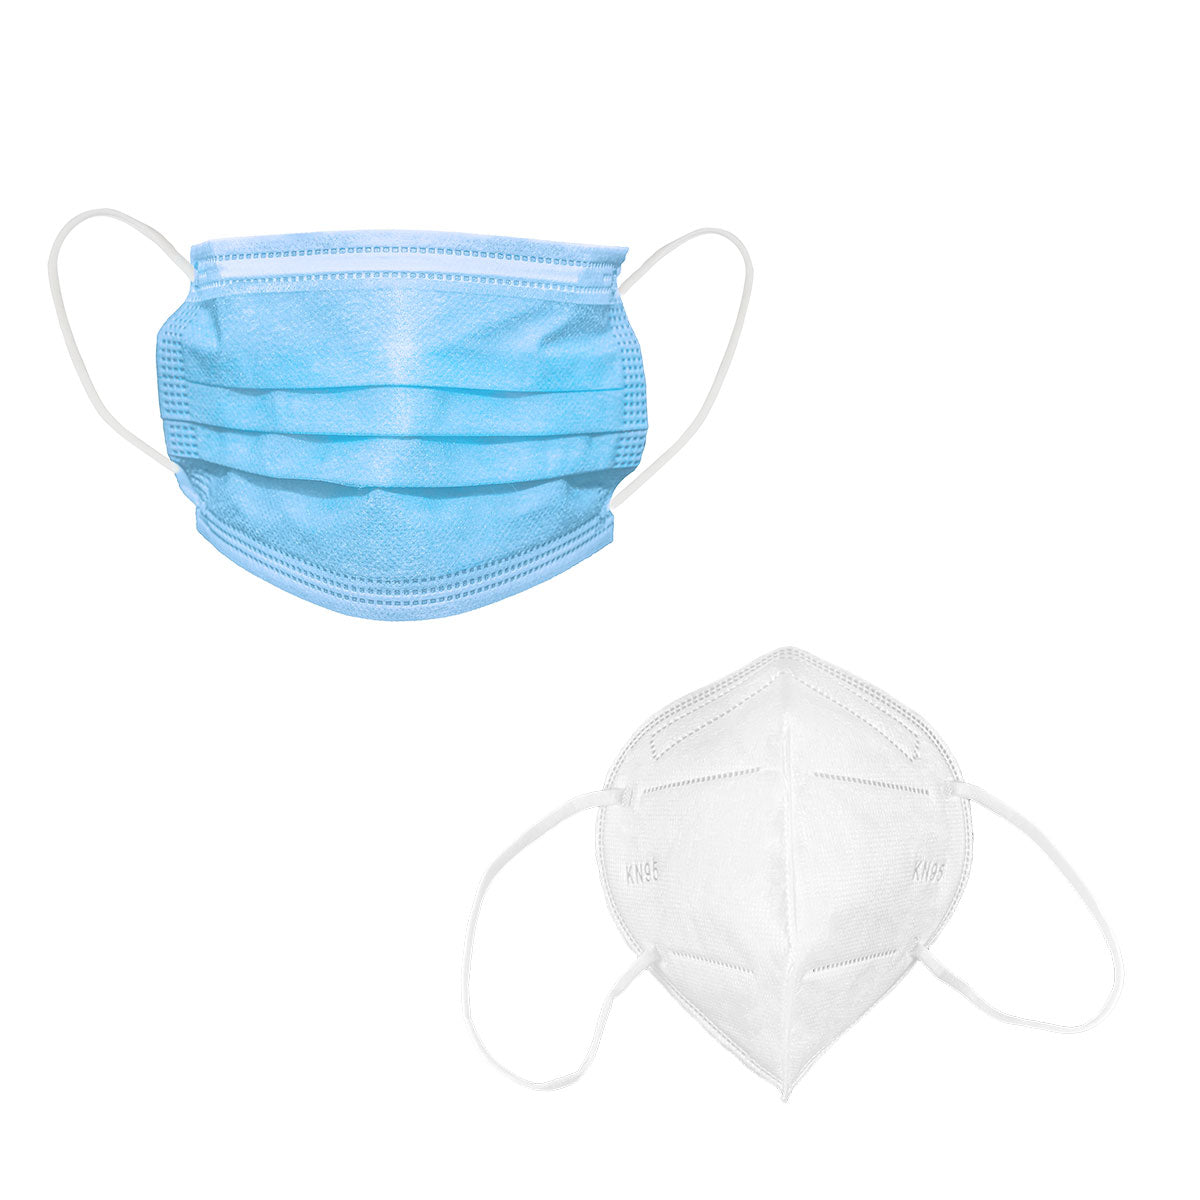 C2W Health coupon: (20 PACK) KN95 /FFP2 4-Layer Fitted Disposable Mask + (50 PACK) 3 Ply Disposable Masks